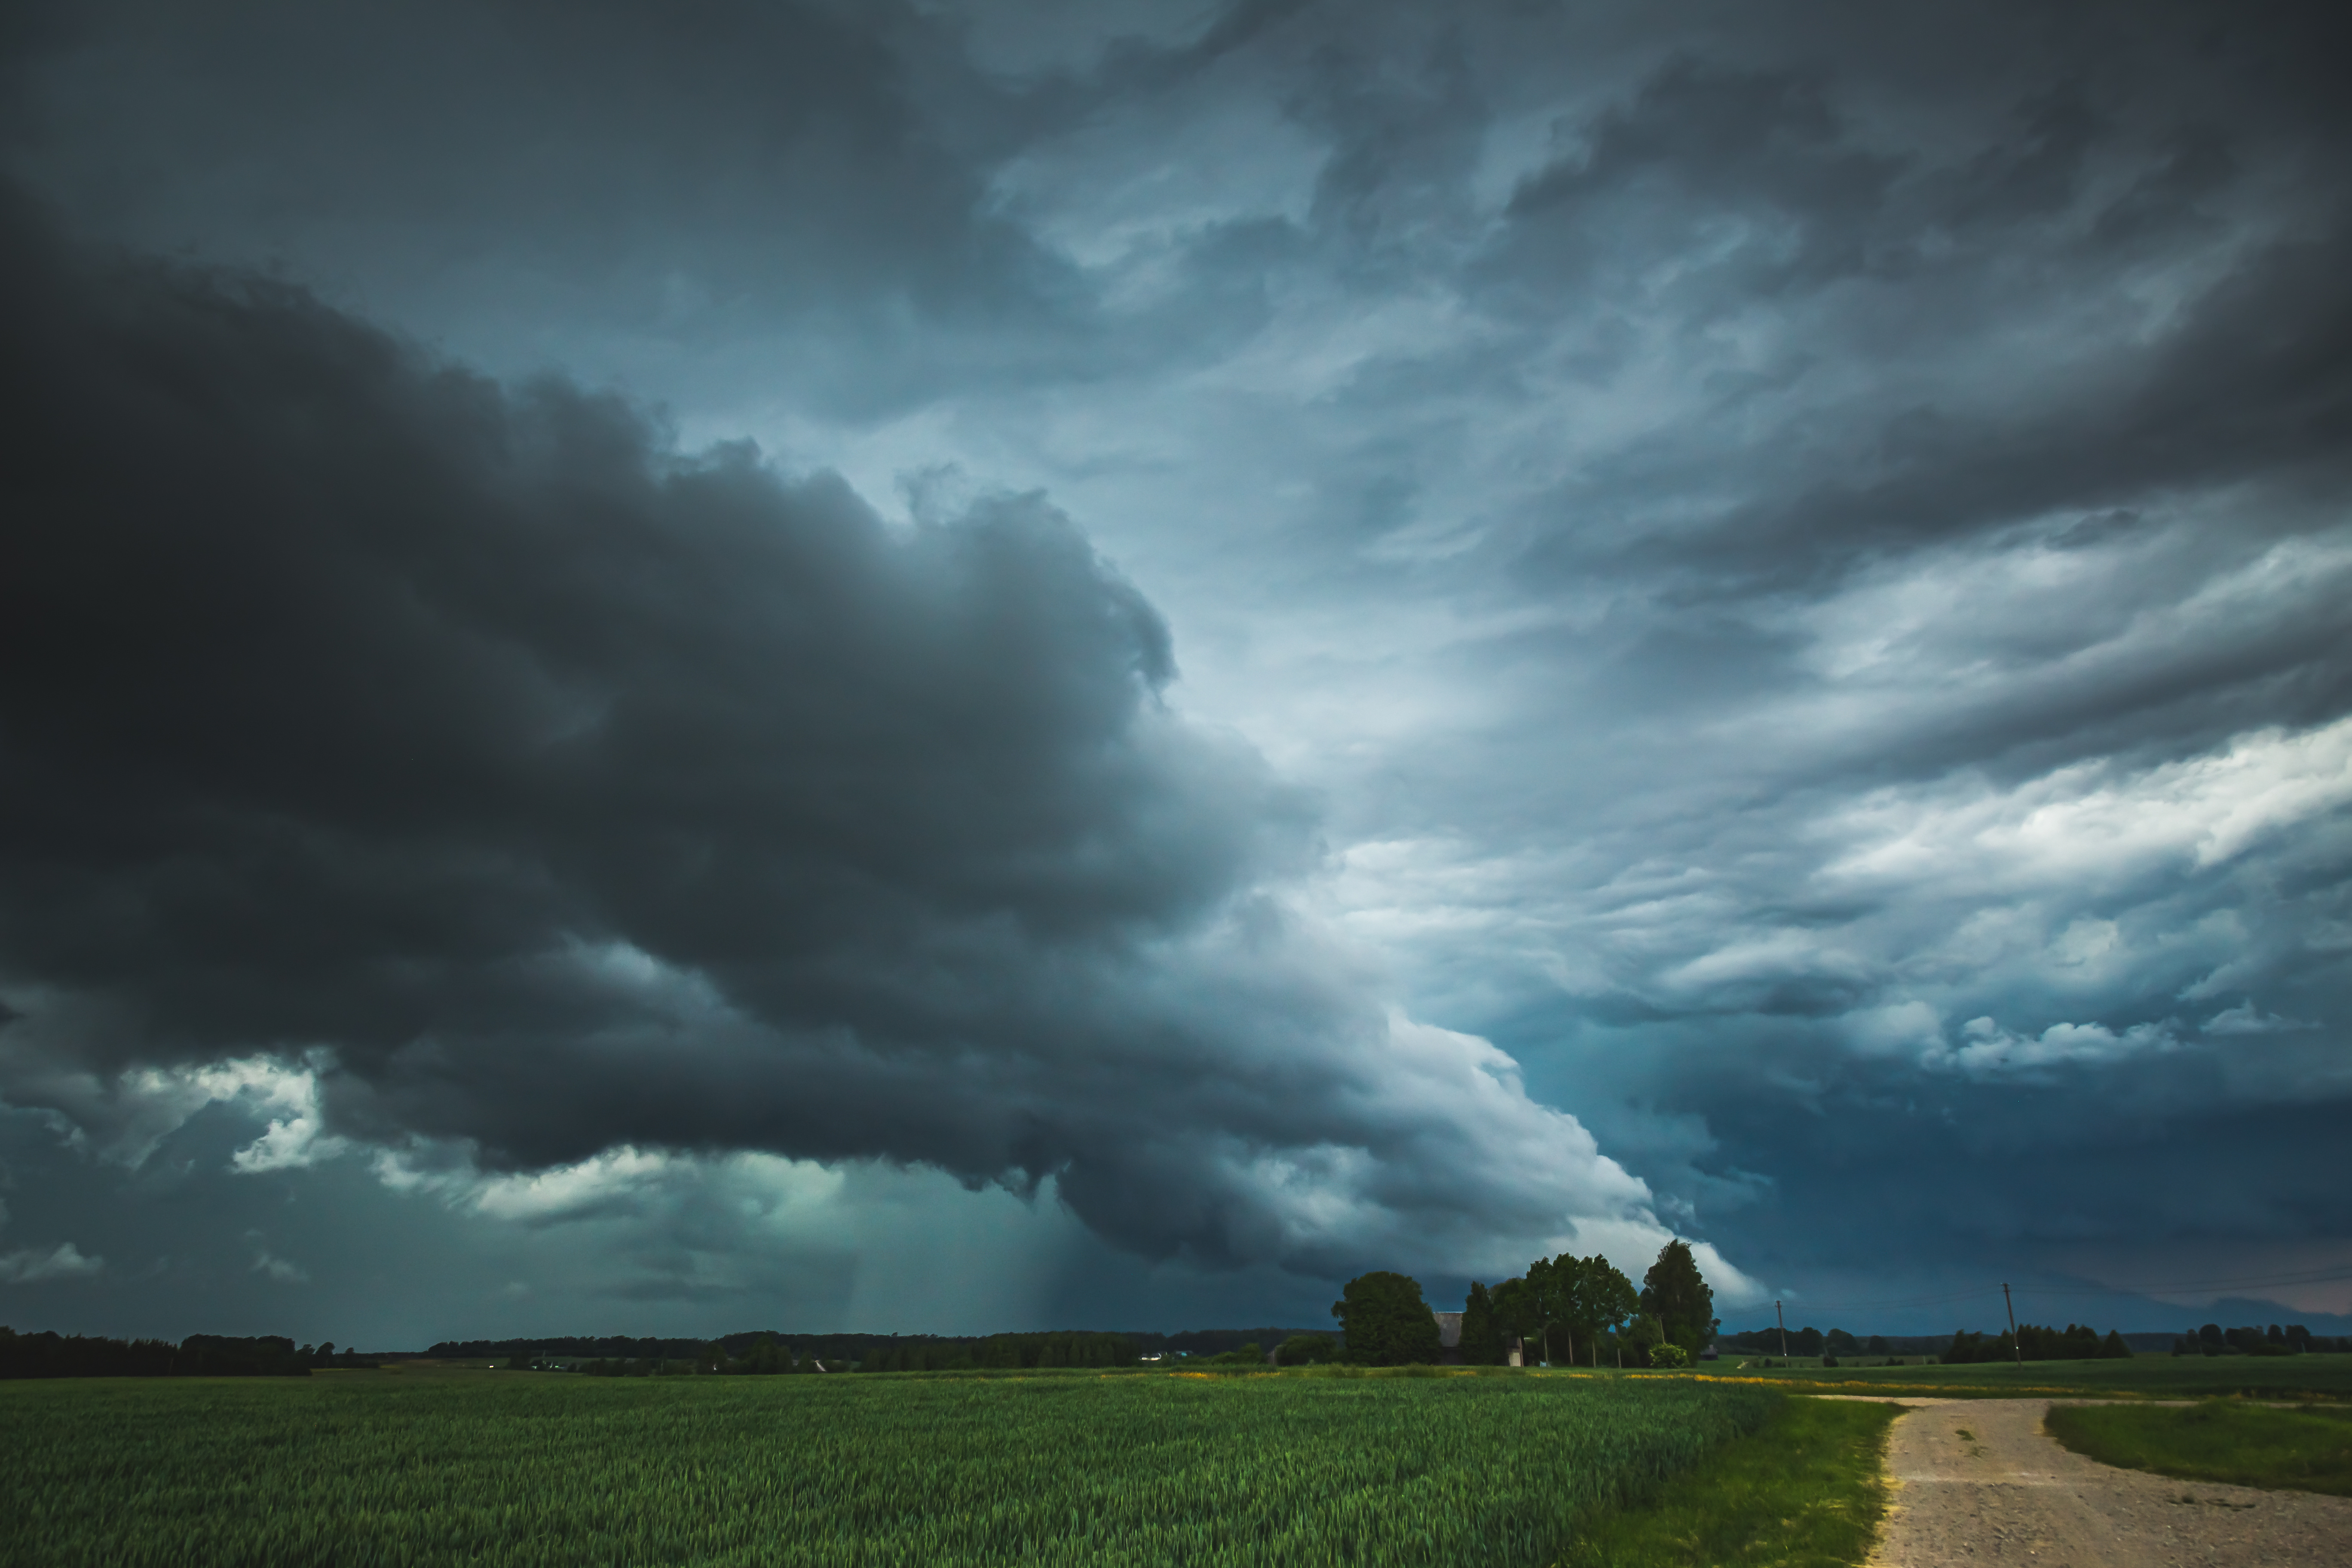 storm on the horizon of a rural landscape